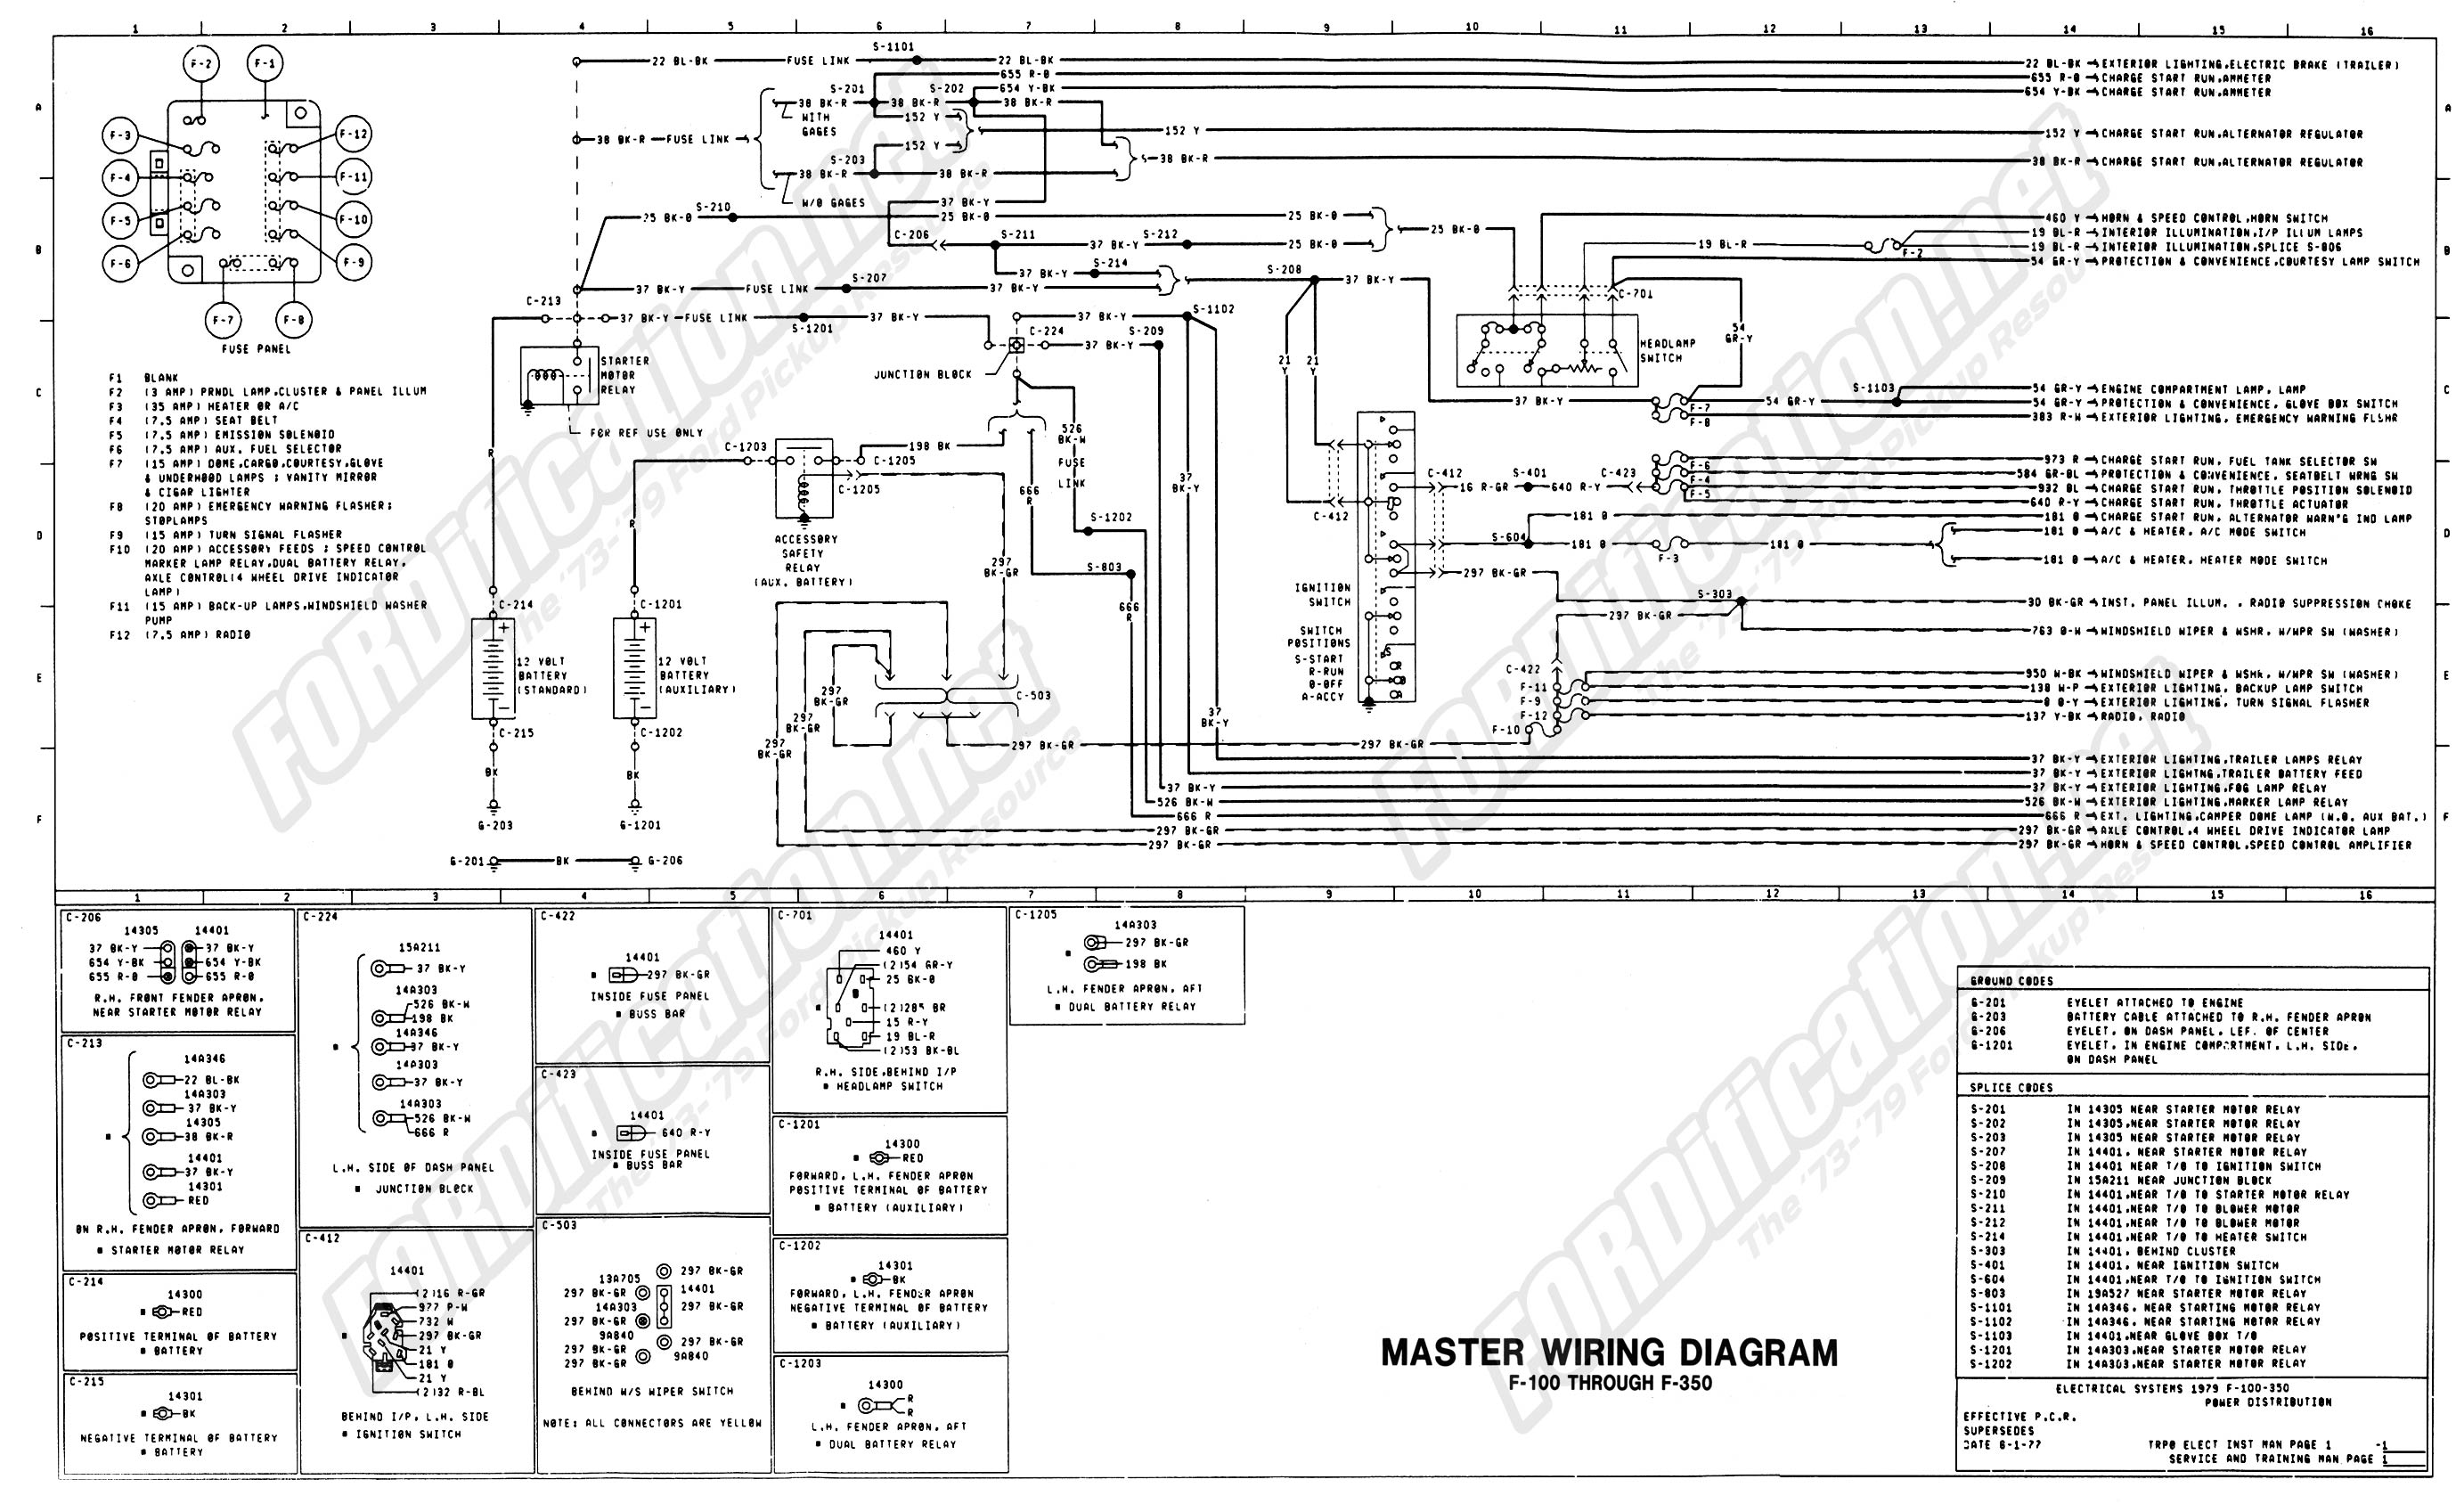 2004 ford f350 ignition switch wiring diagram